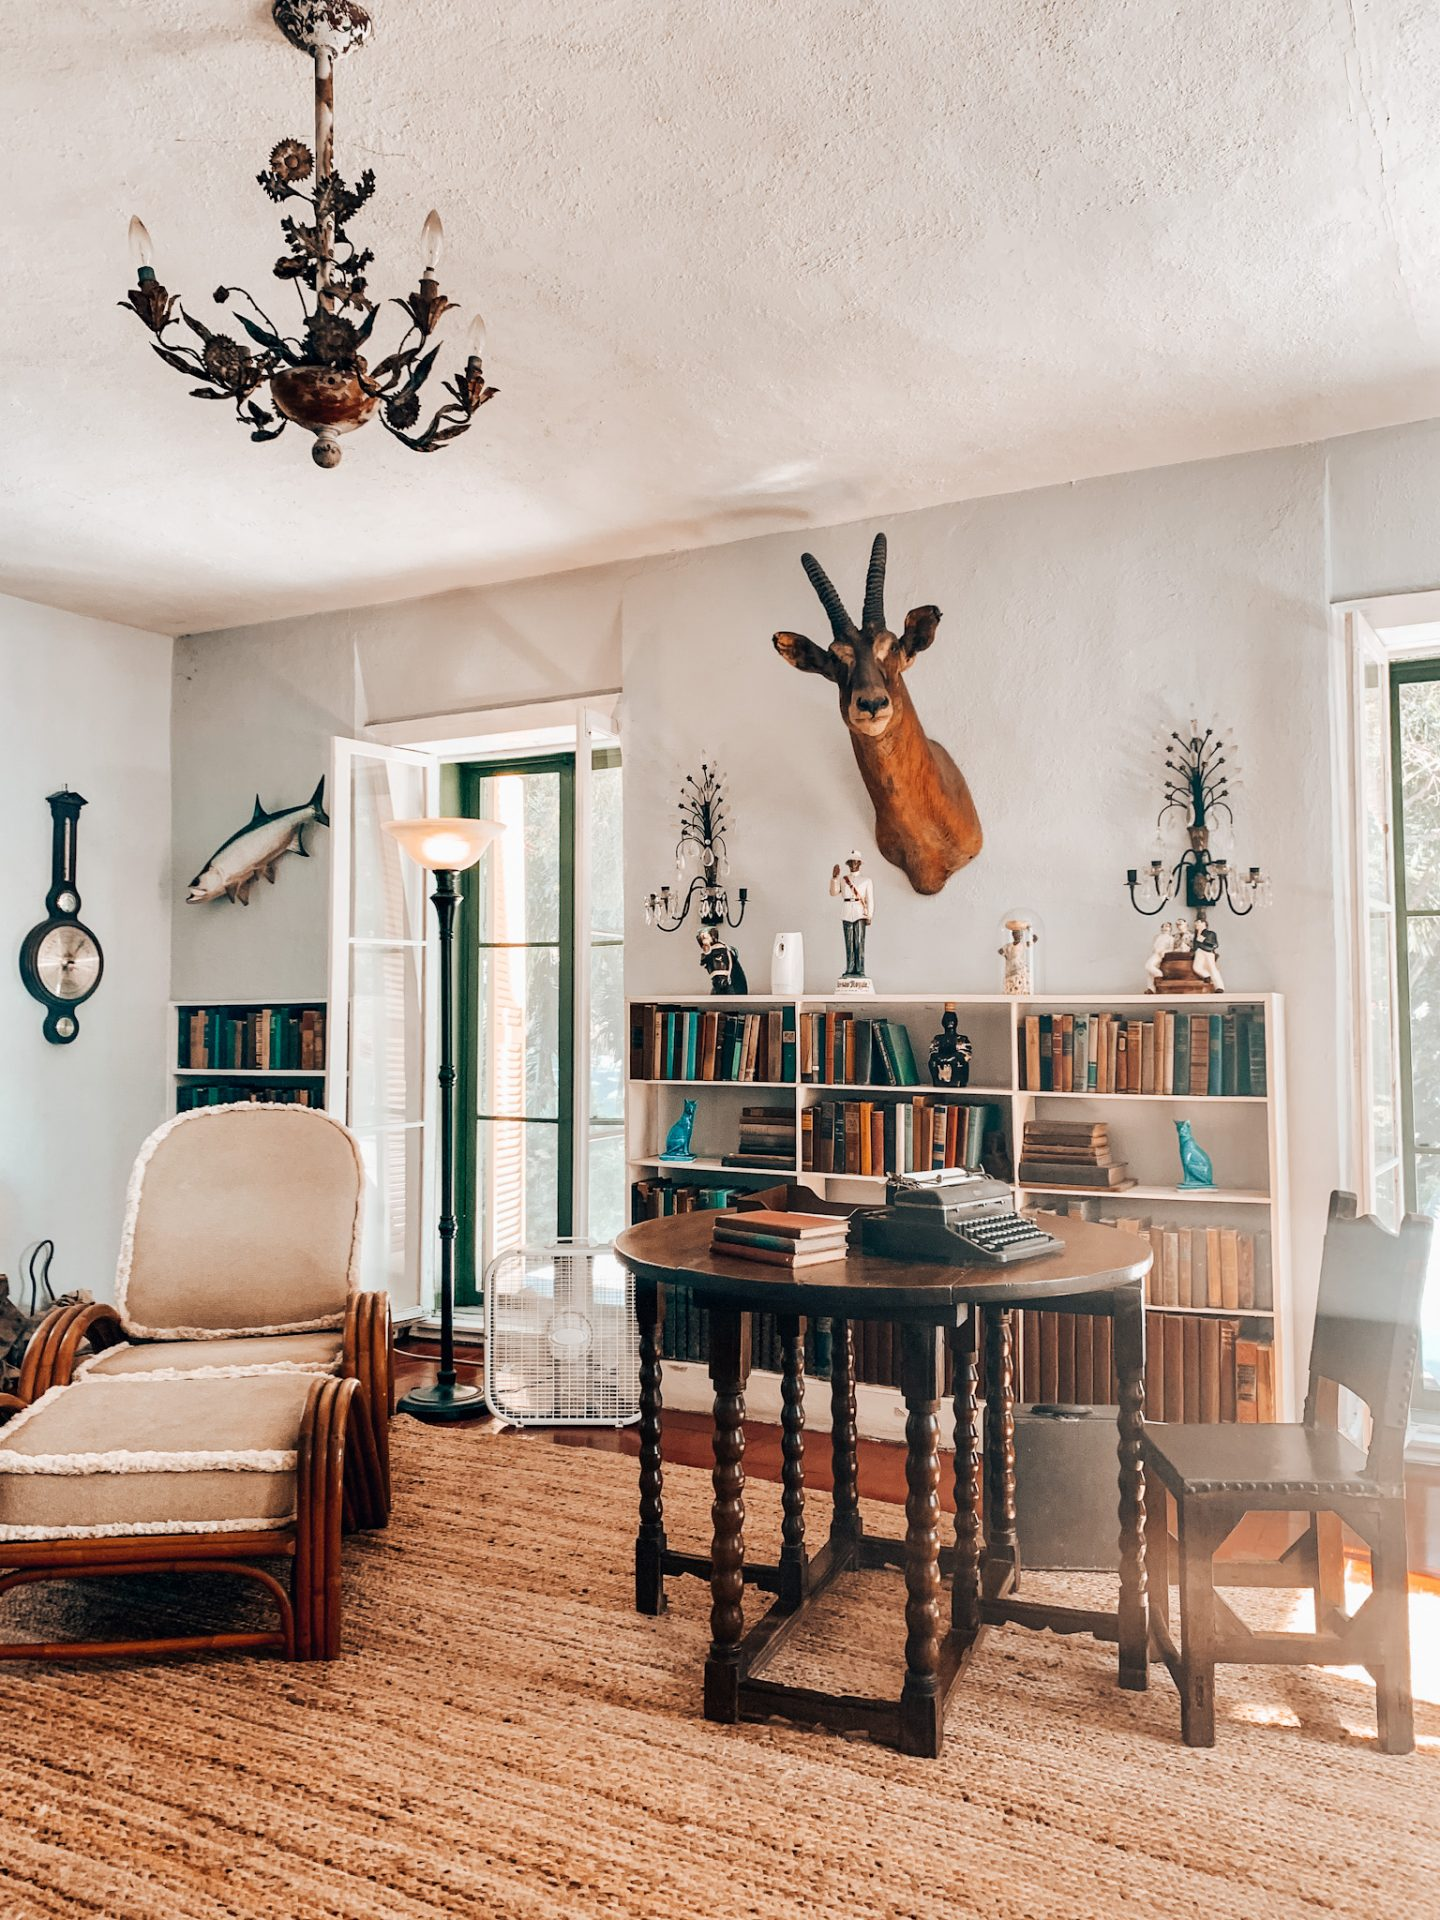 Ernest Hemingway did the majority of his writing in his man cave!